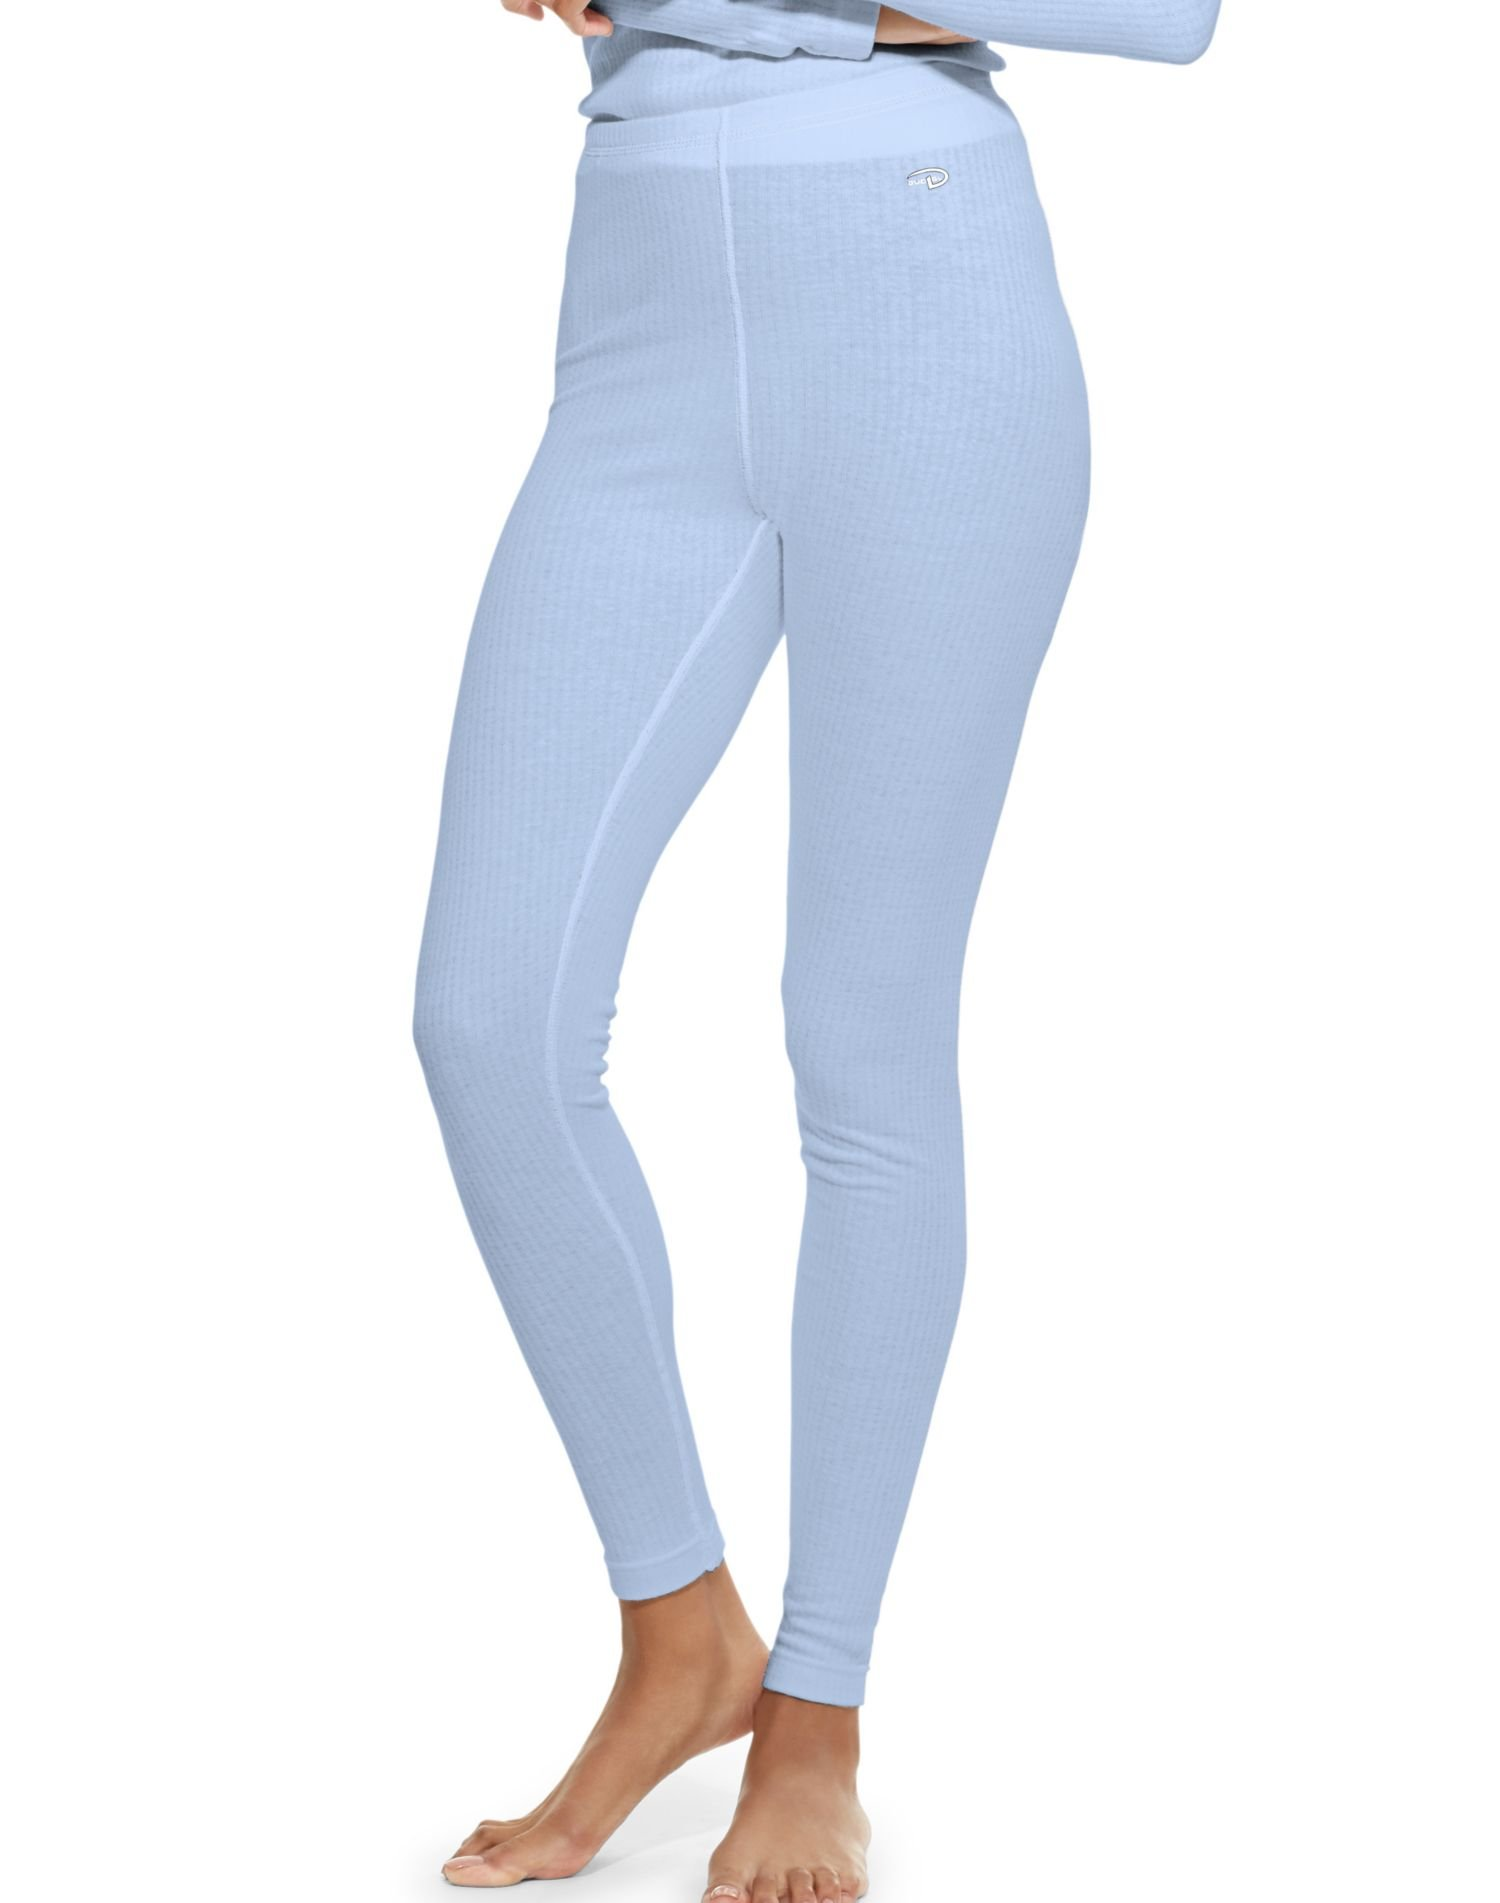 Duofold Women's Mid Weight Wicking Thermal Leggings, Frost, Small